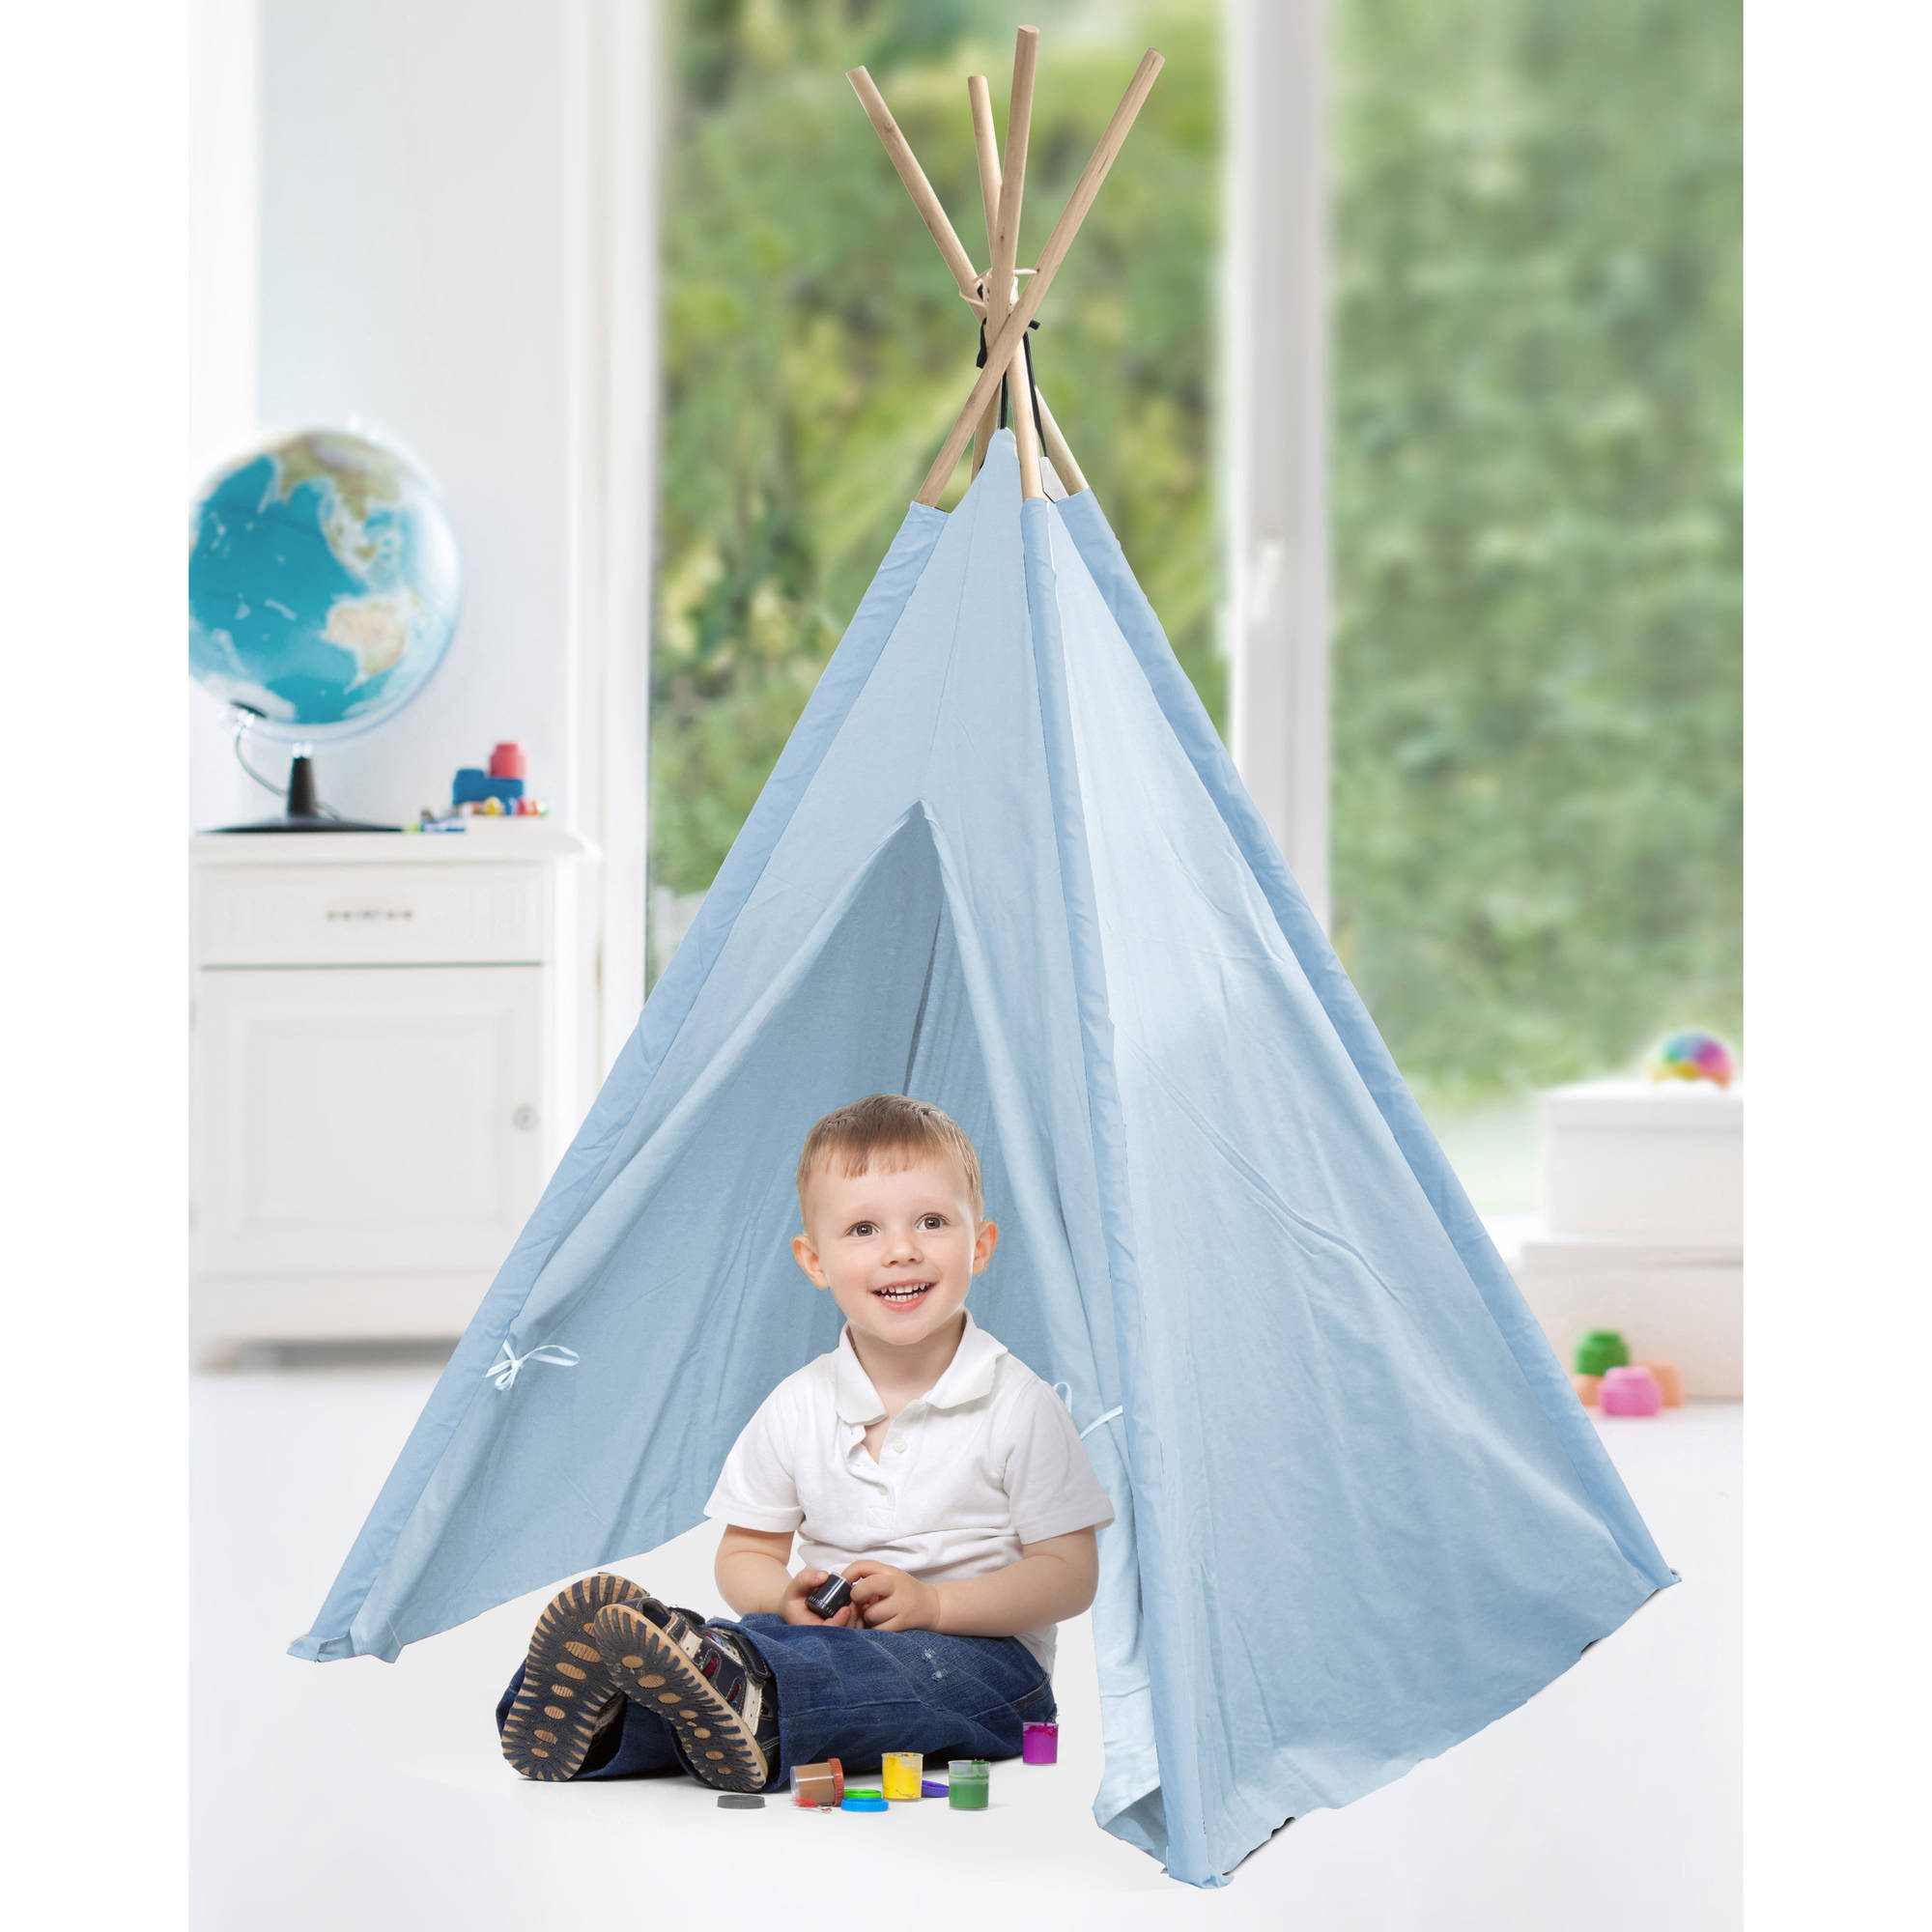 American Kids Awesome Tee-Pee Tent, Light Blue by Idea Nuova